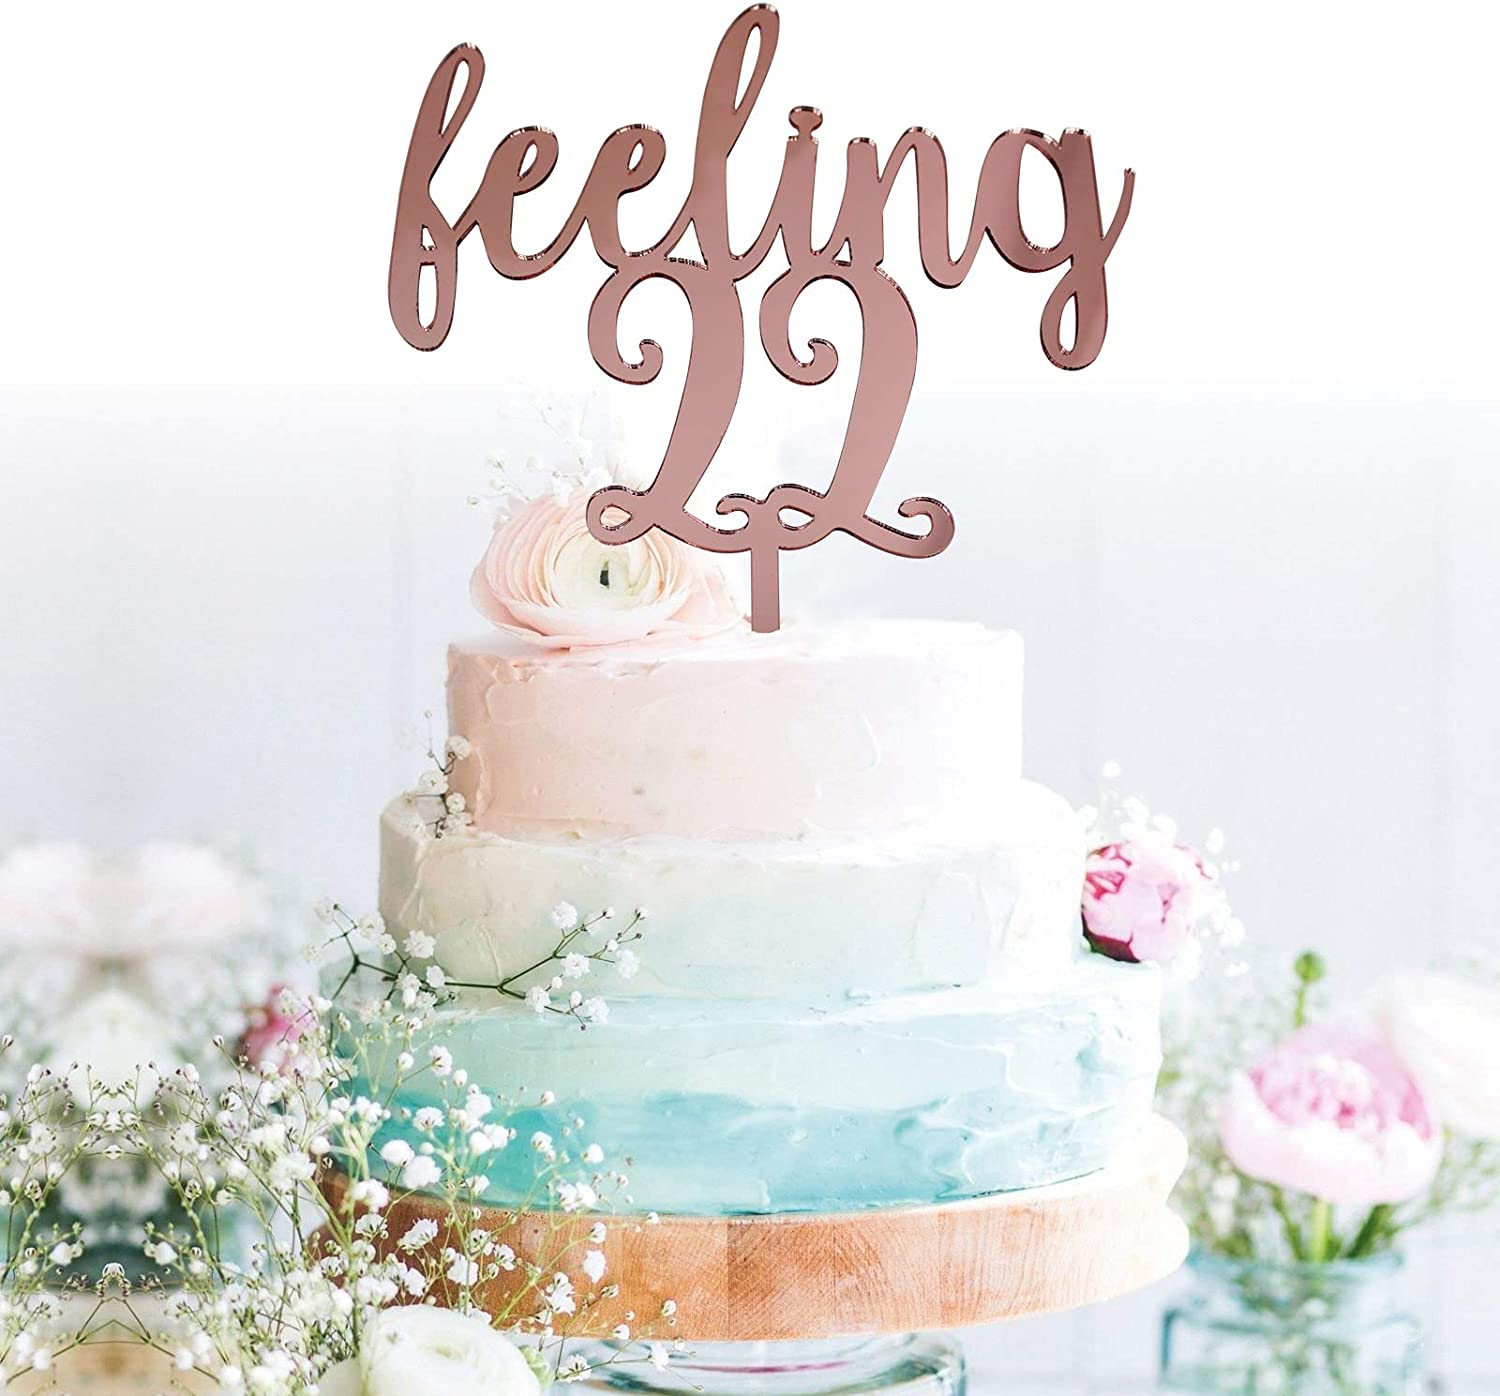 Sensational Amazon Com Grantparty Feeling 22 Rose Gold Cake Topper 22Nd Personalised Birthday Cards Sponlily Jamesorg